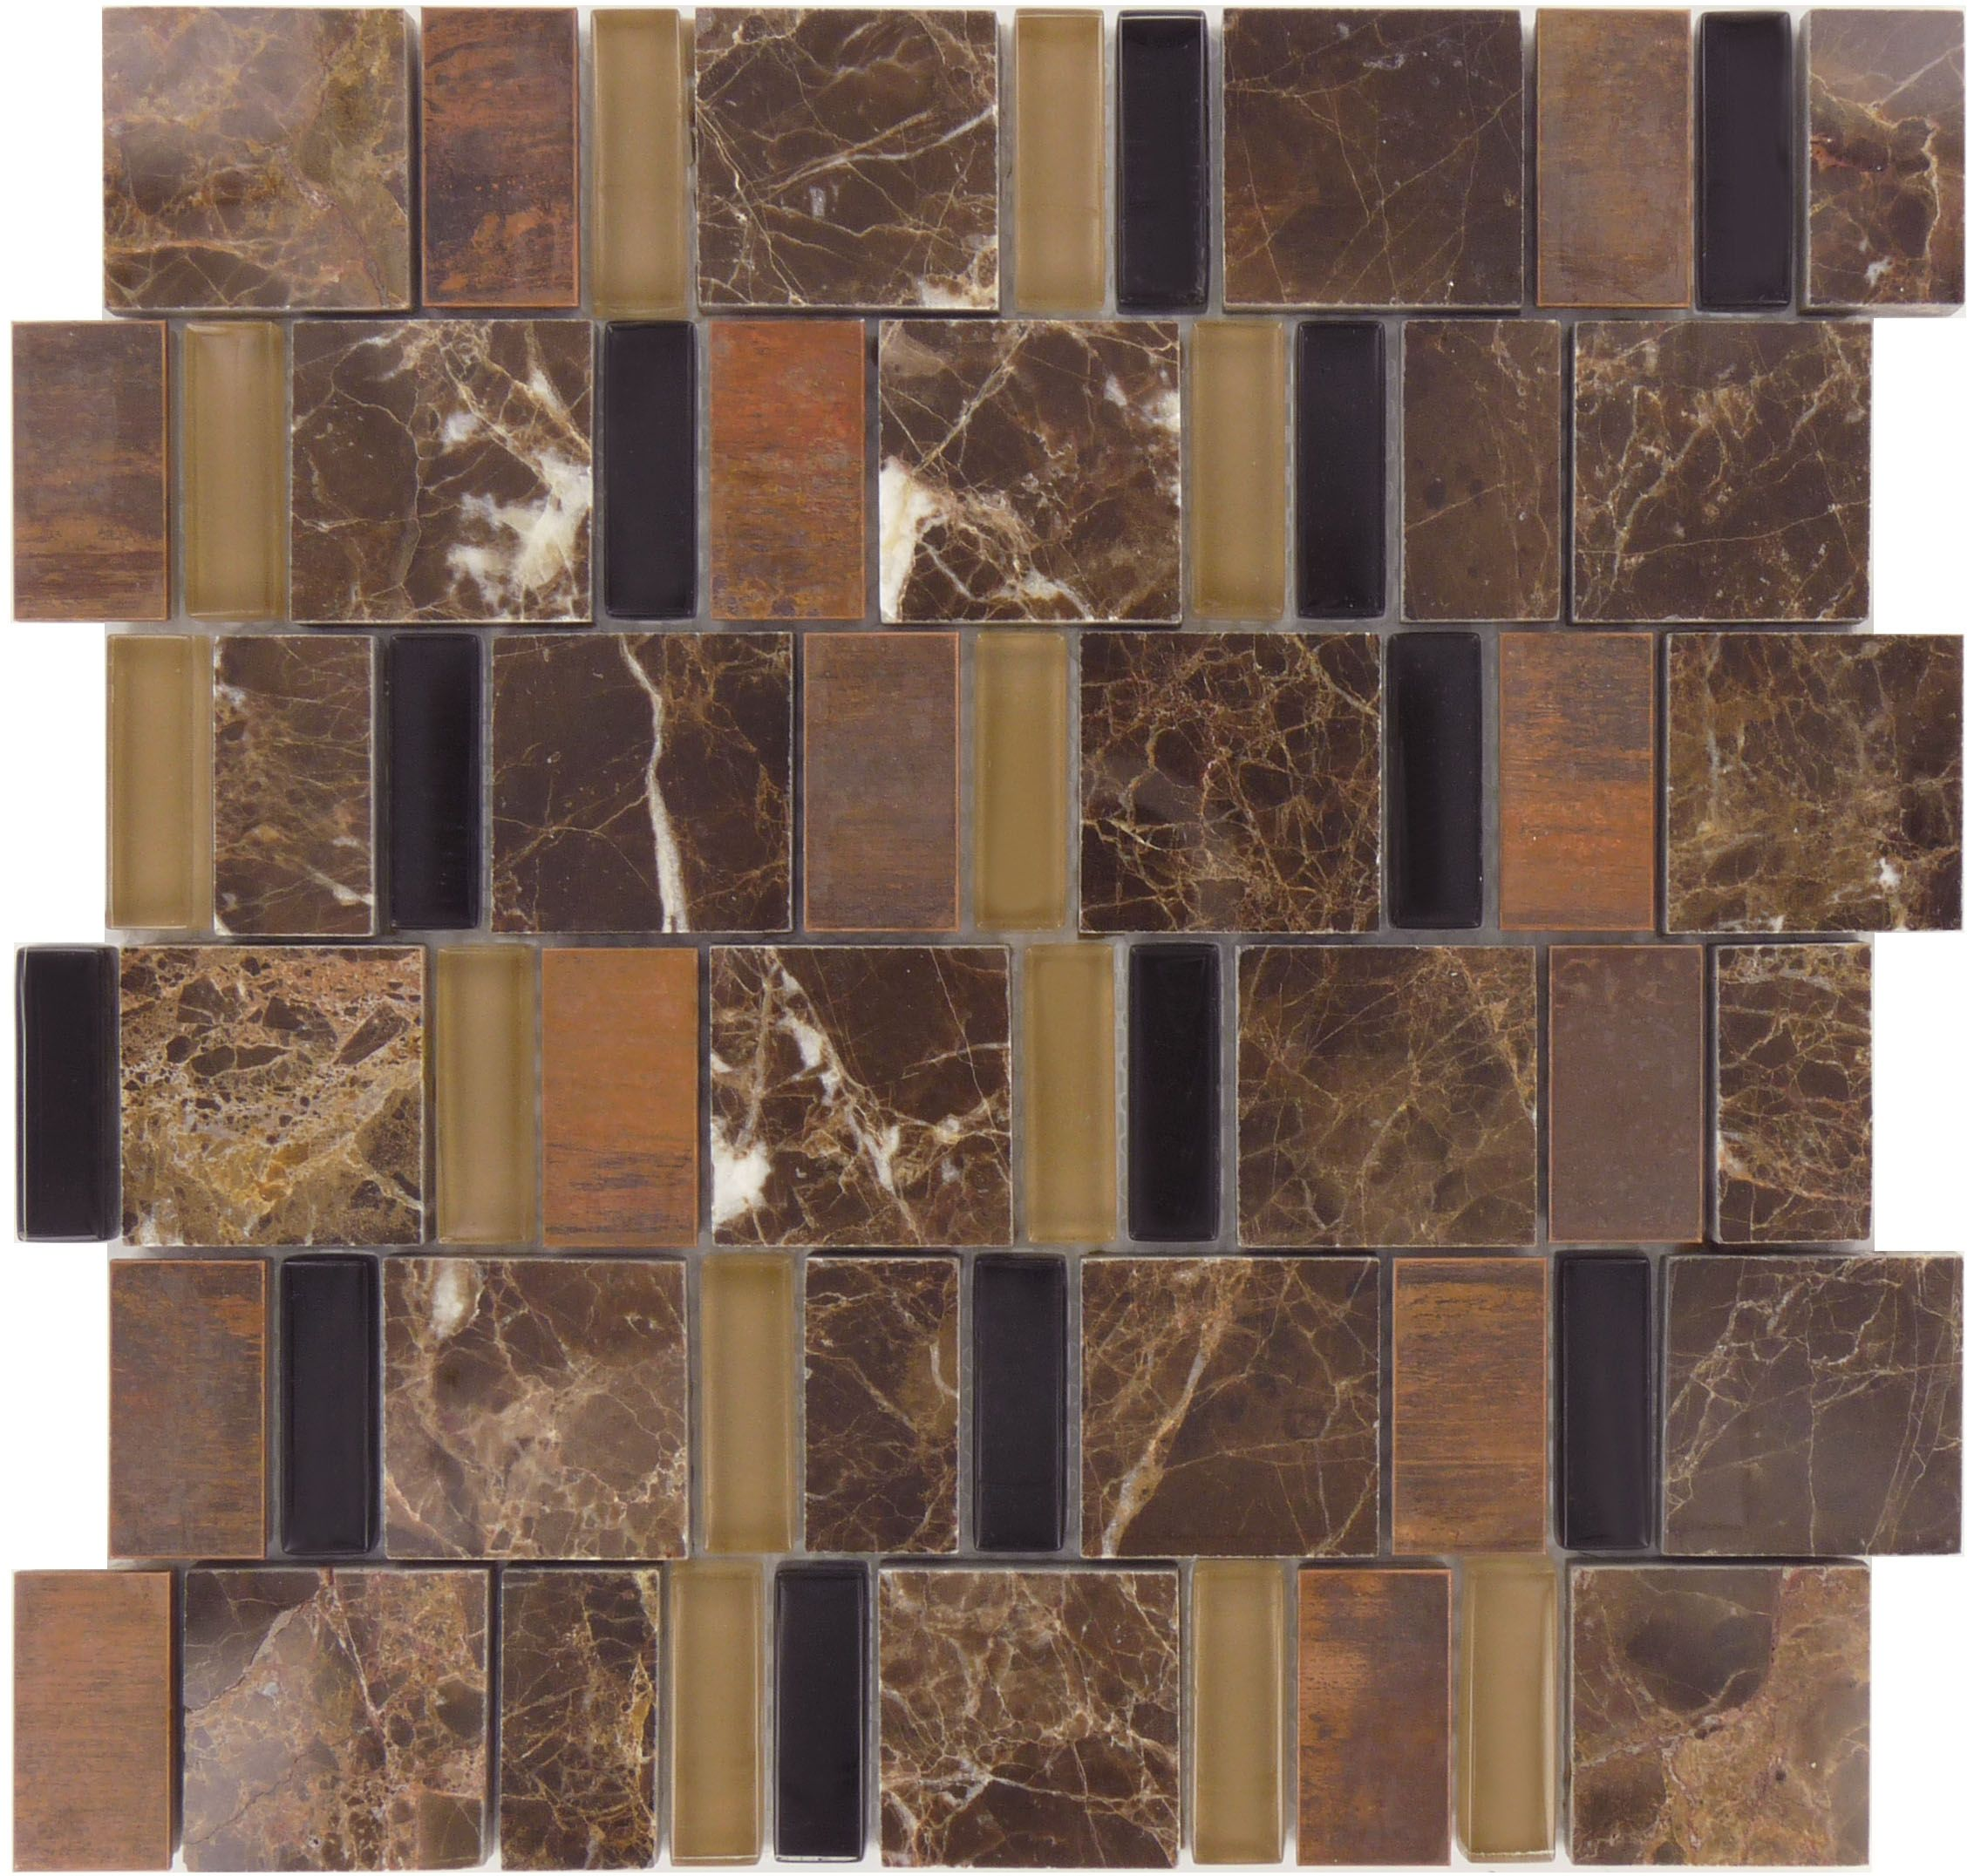 Millenium Products  Academia Series, Unique Shapes, Majestic, Glossy & Polished, Brown, Glass, Stone & Metal